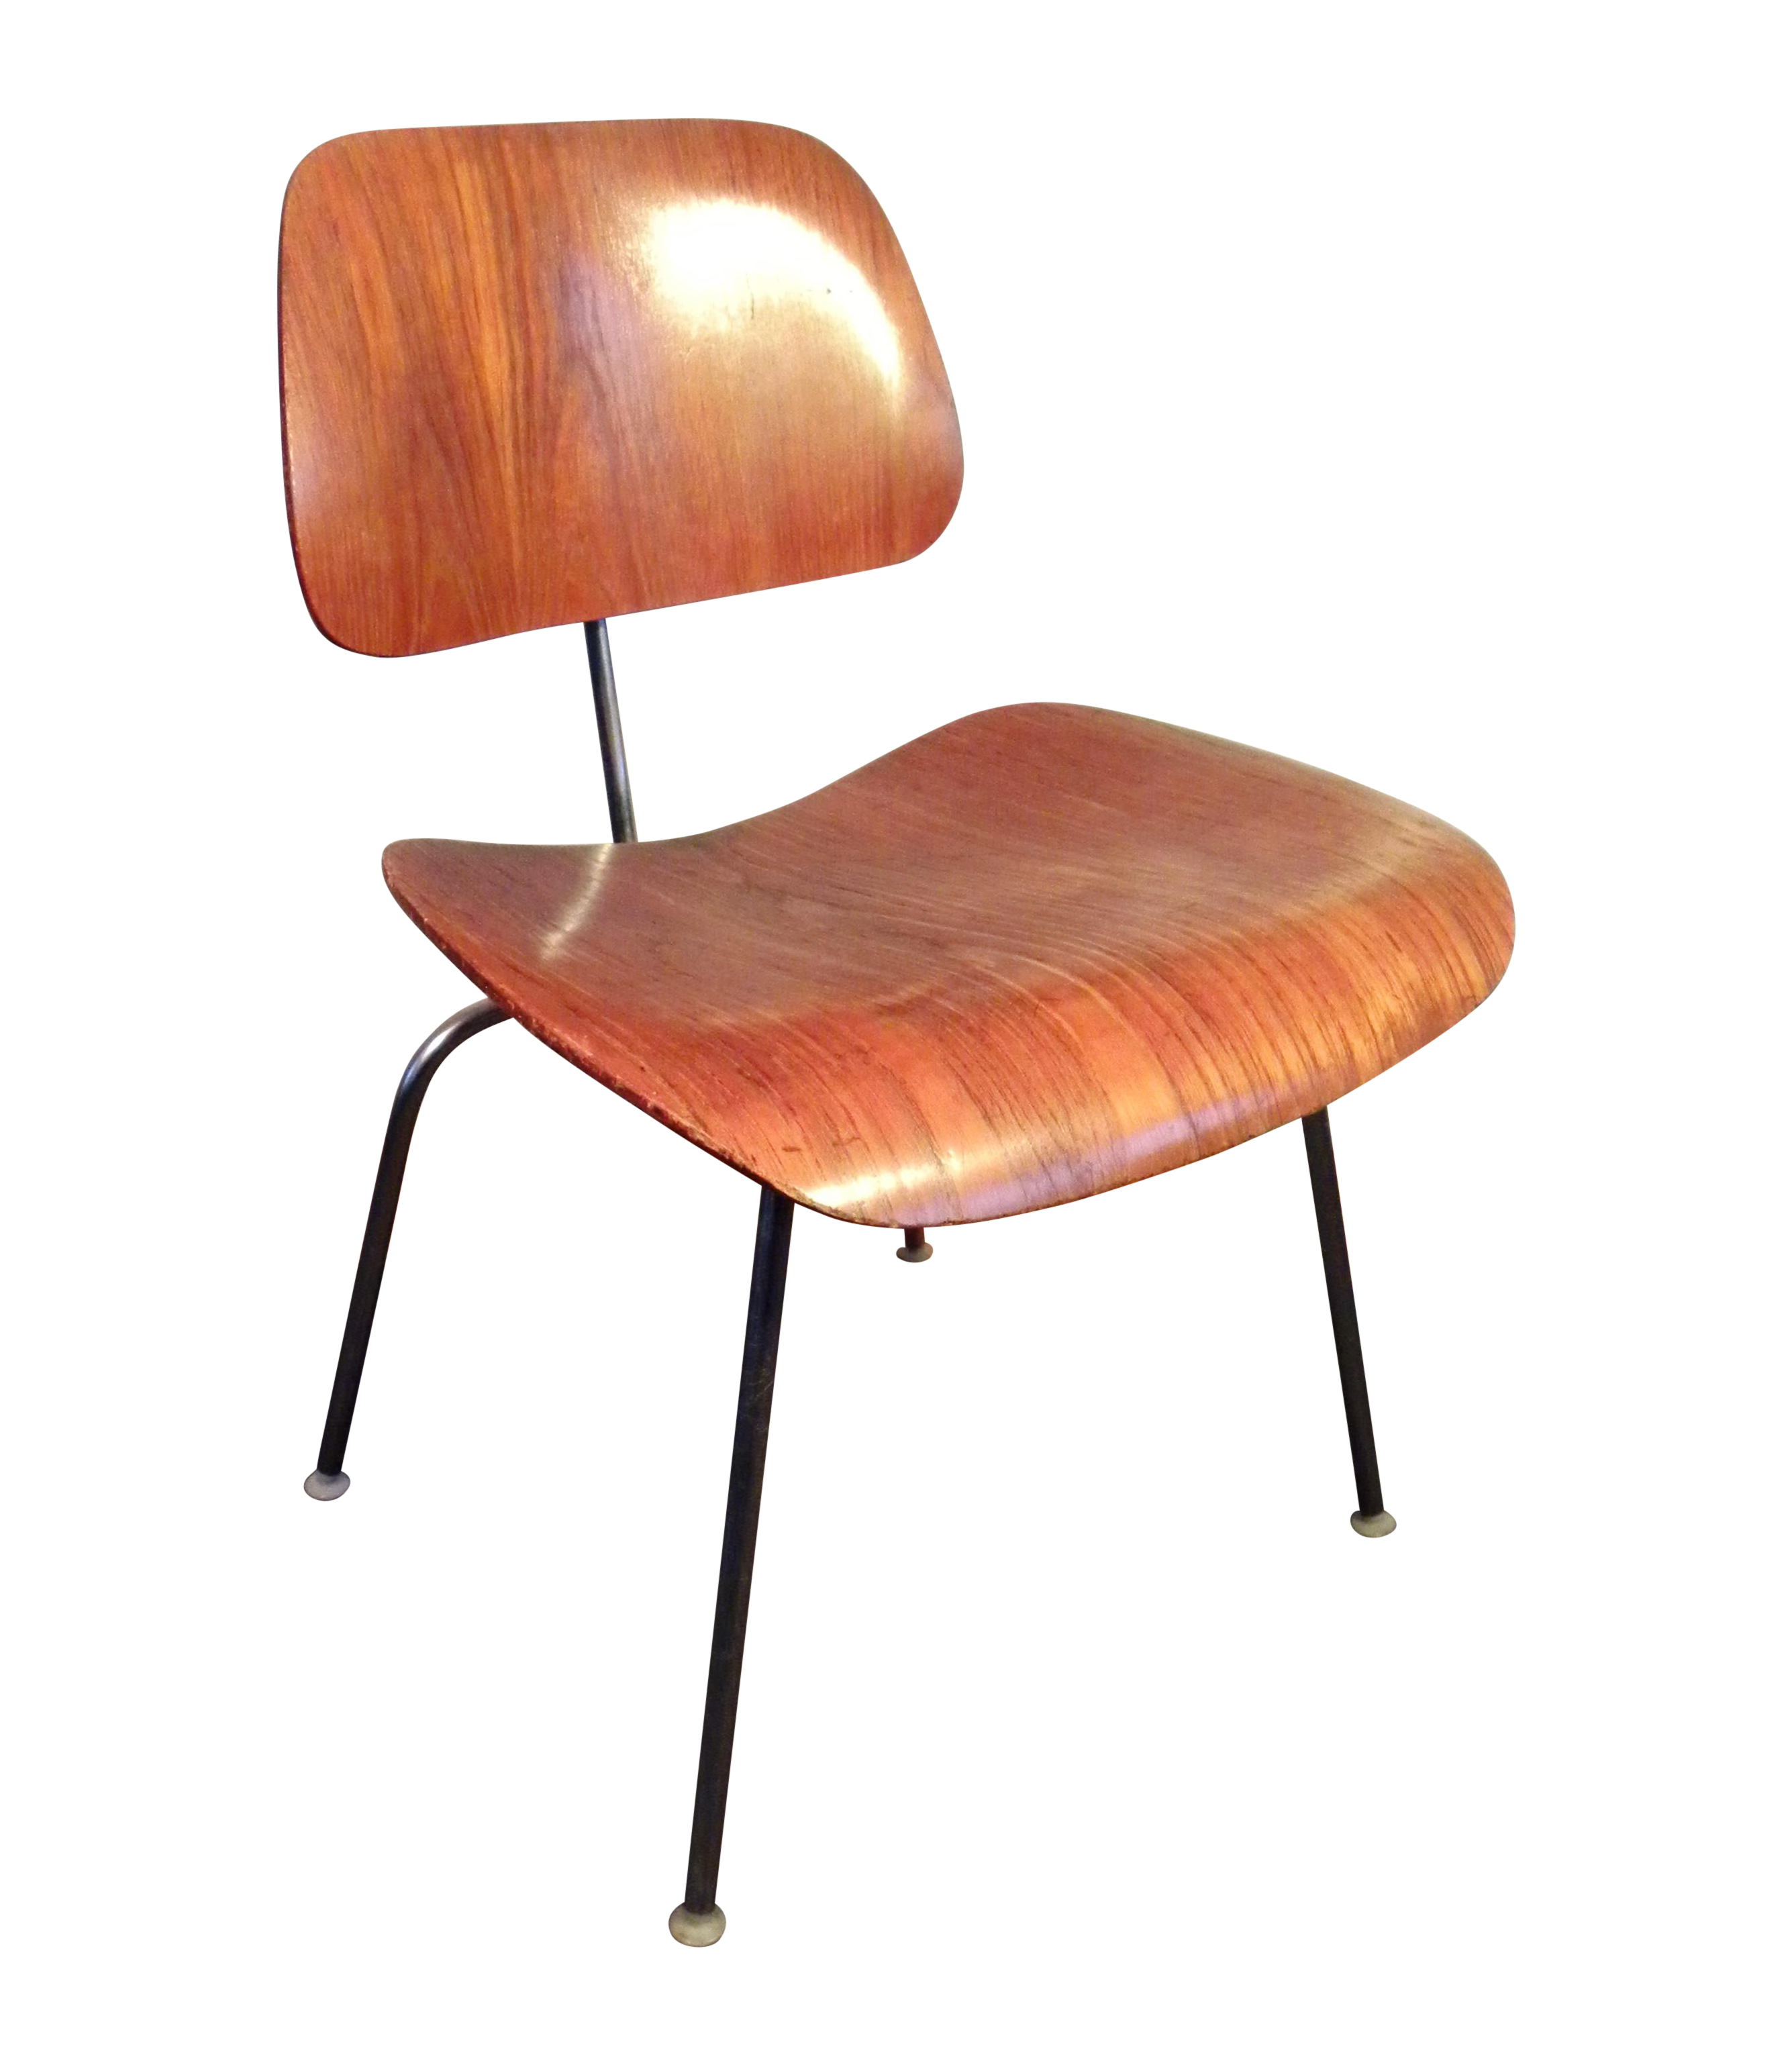 Original 1960 s Eames Herman Miller DCM Chair